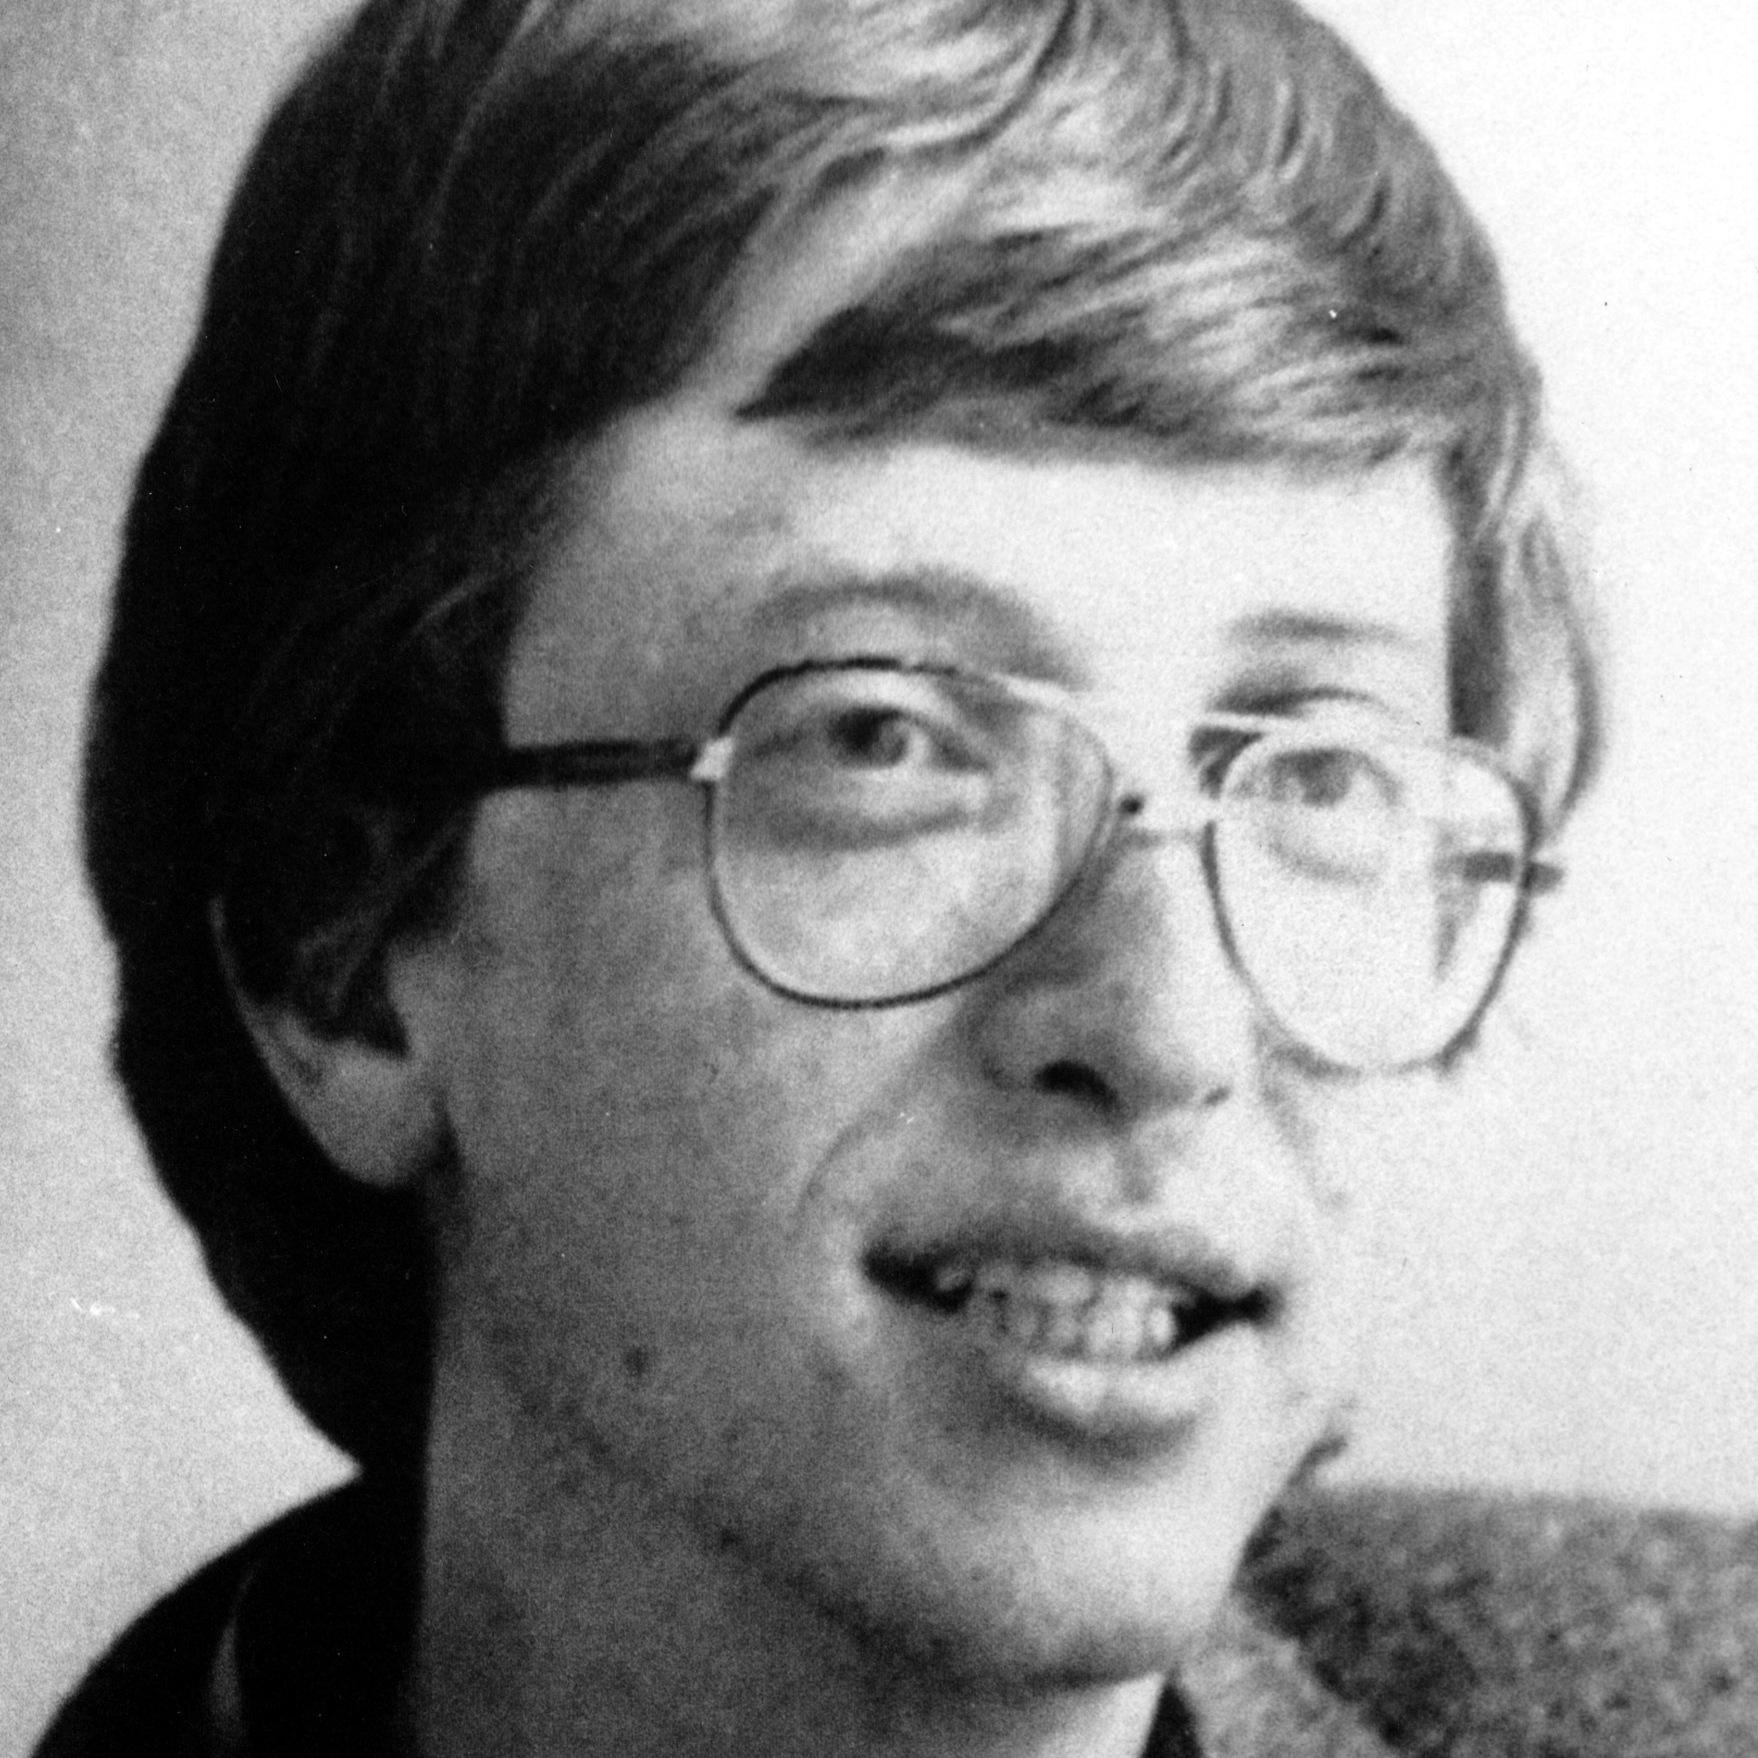 a description of bill gates as the founder of microsoft Bill gates epitomizes the late 20th century legend of the entrepreneur who starts  a small  he created microsoft (nasdaq: msft), which he launched in 1975 from  the poker room at his harvard dorm as of 2015  description advertiser.